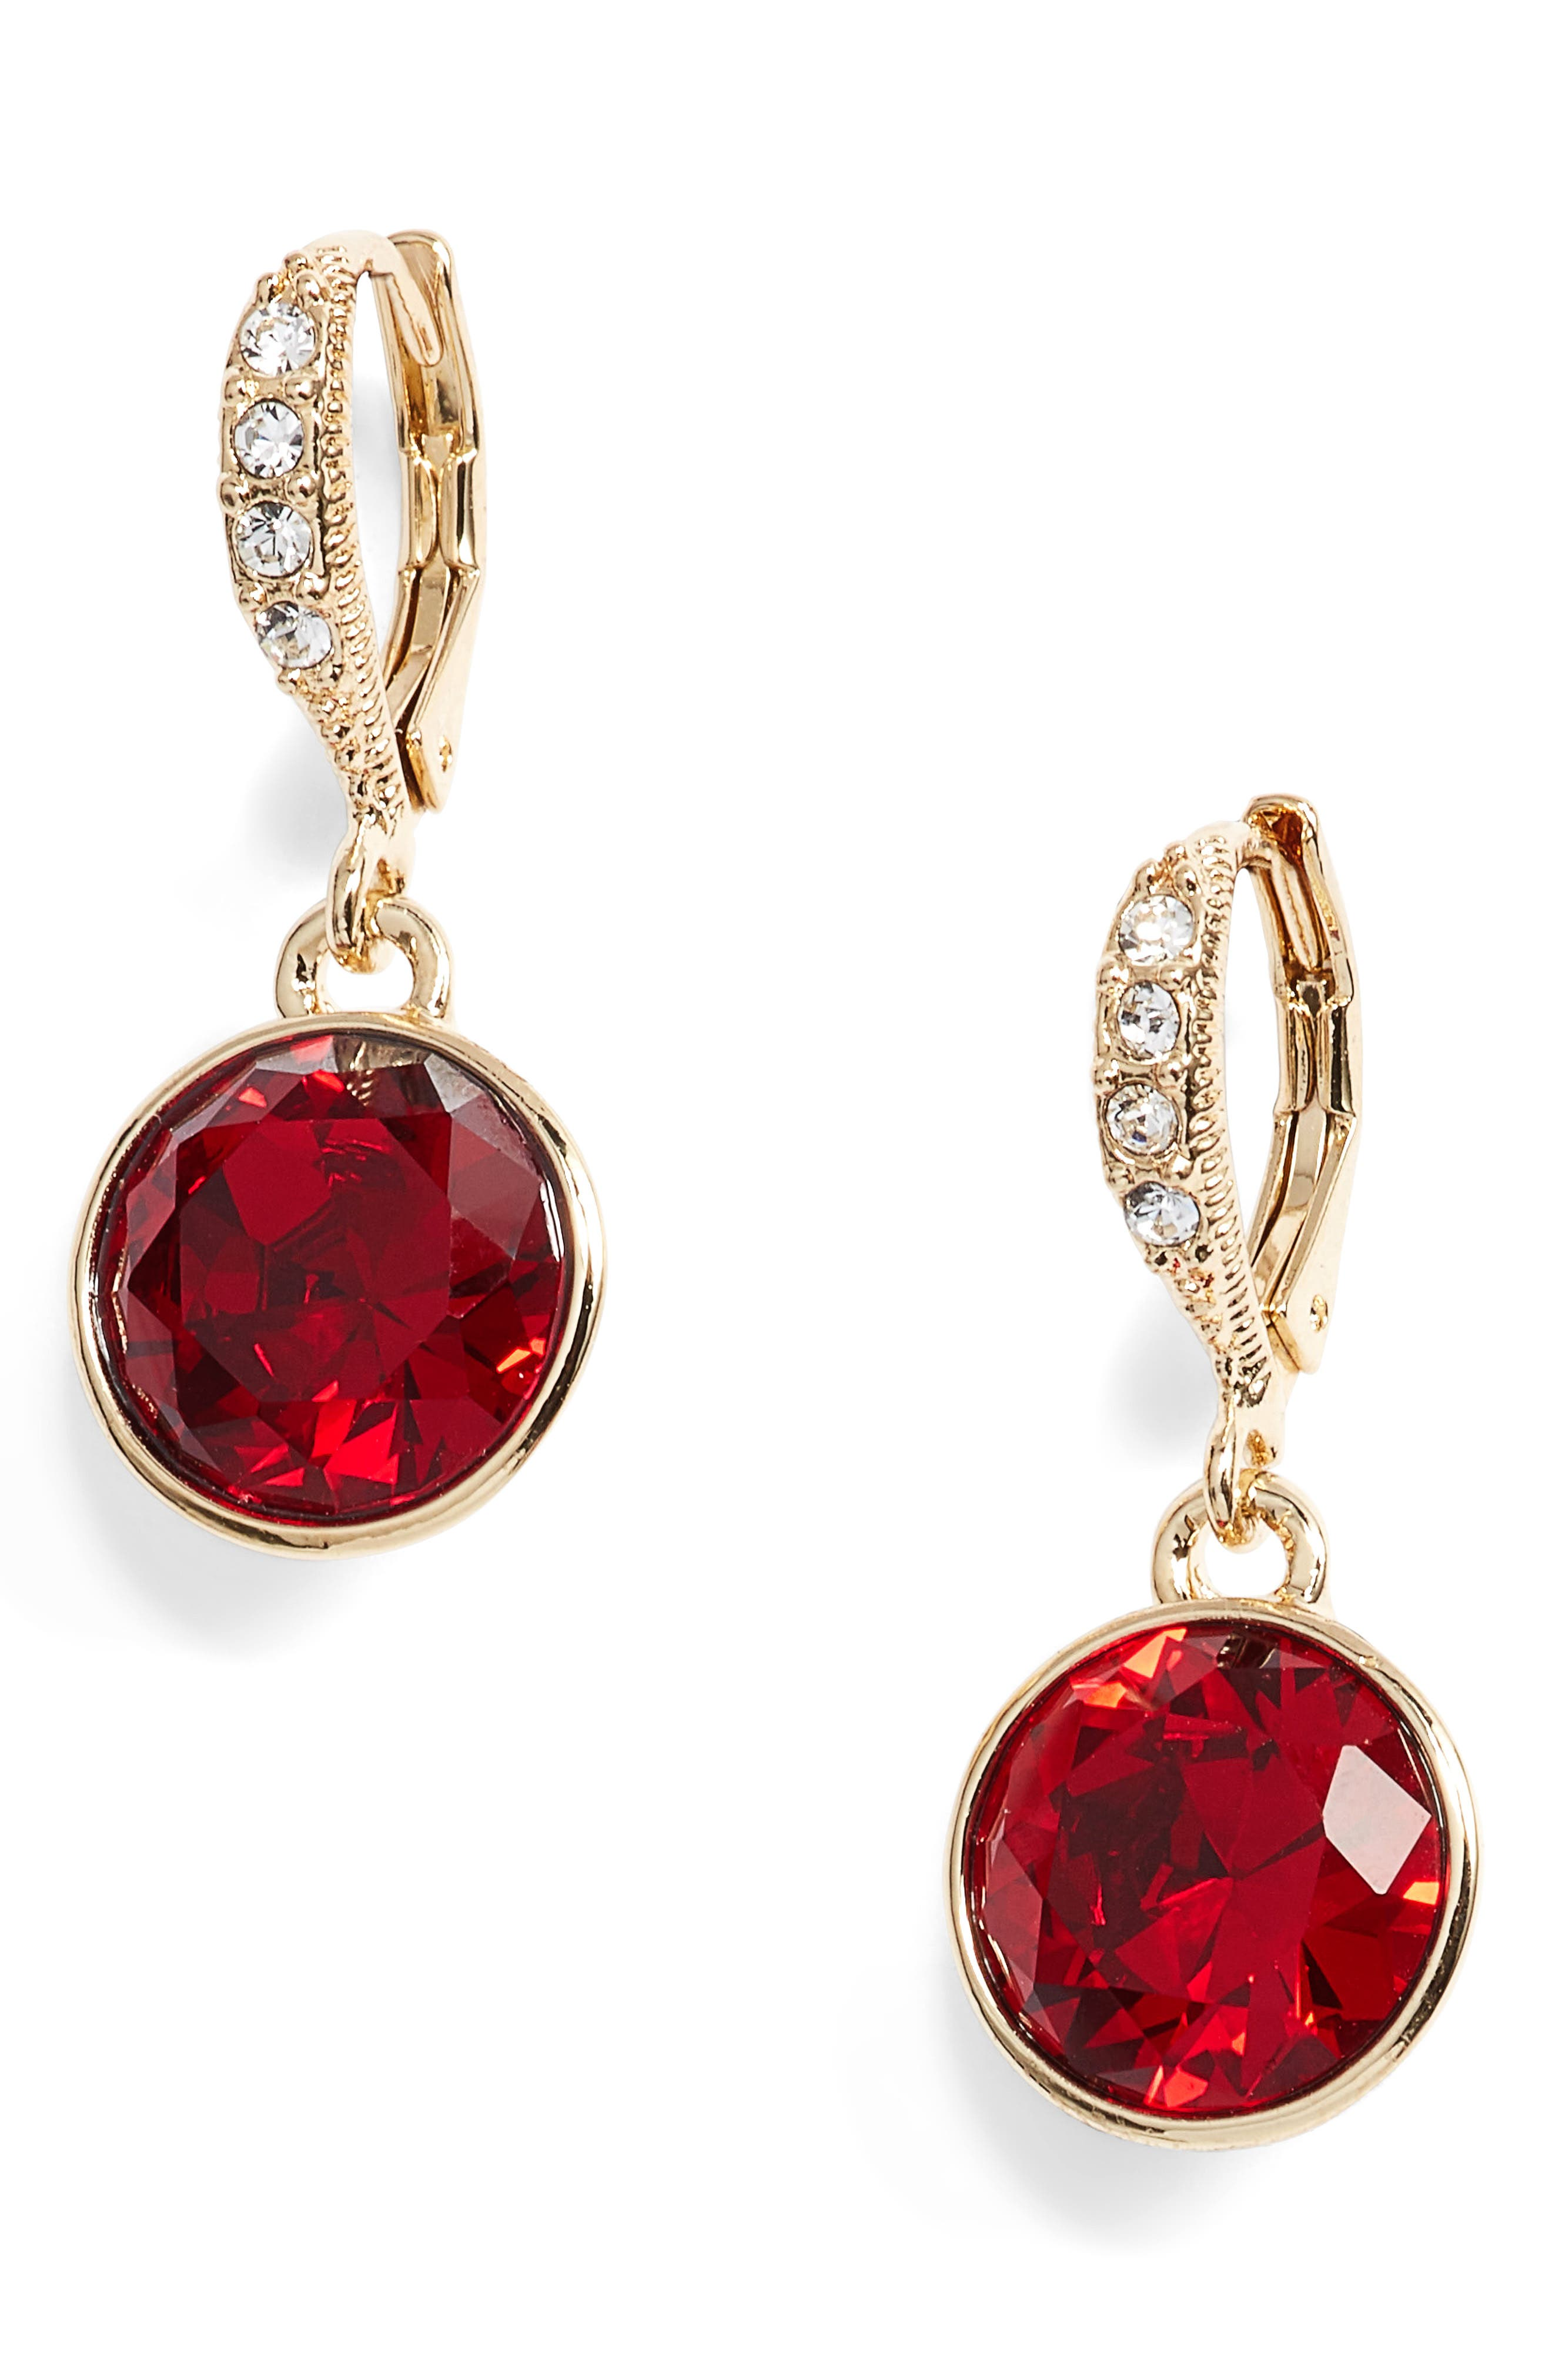 Round Drop Earrings,                             Main thumbnail 1, color,                             Red/ Gold